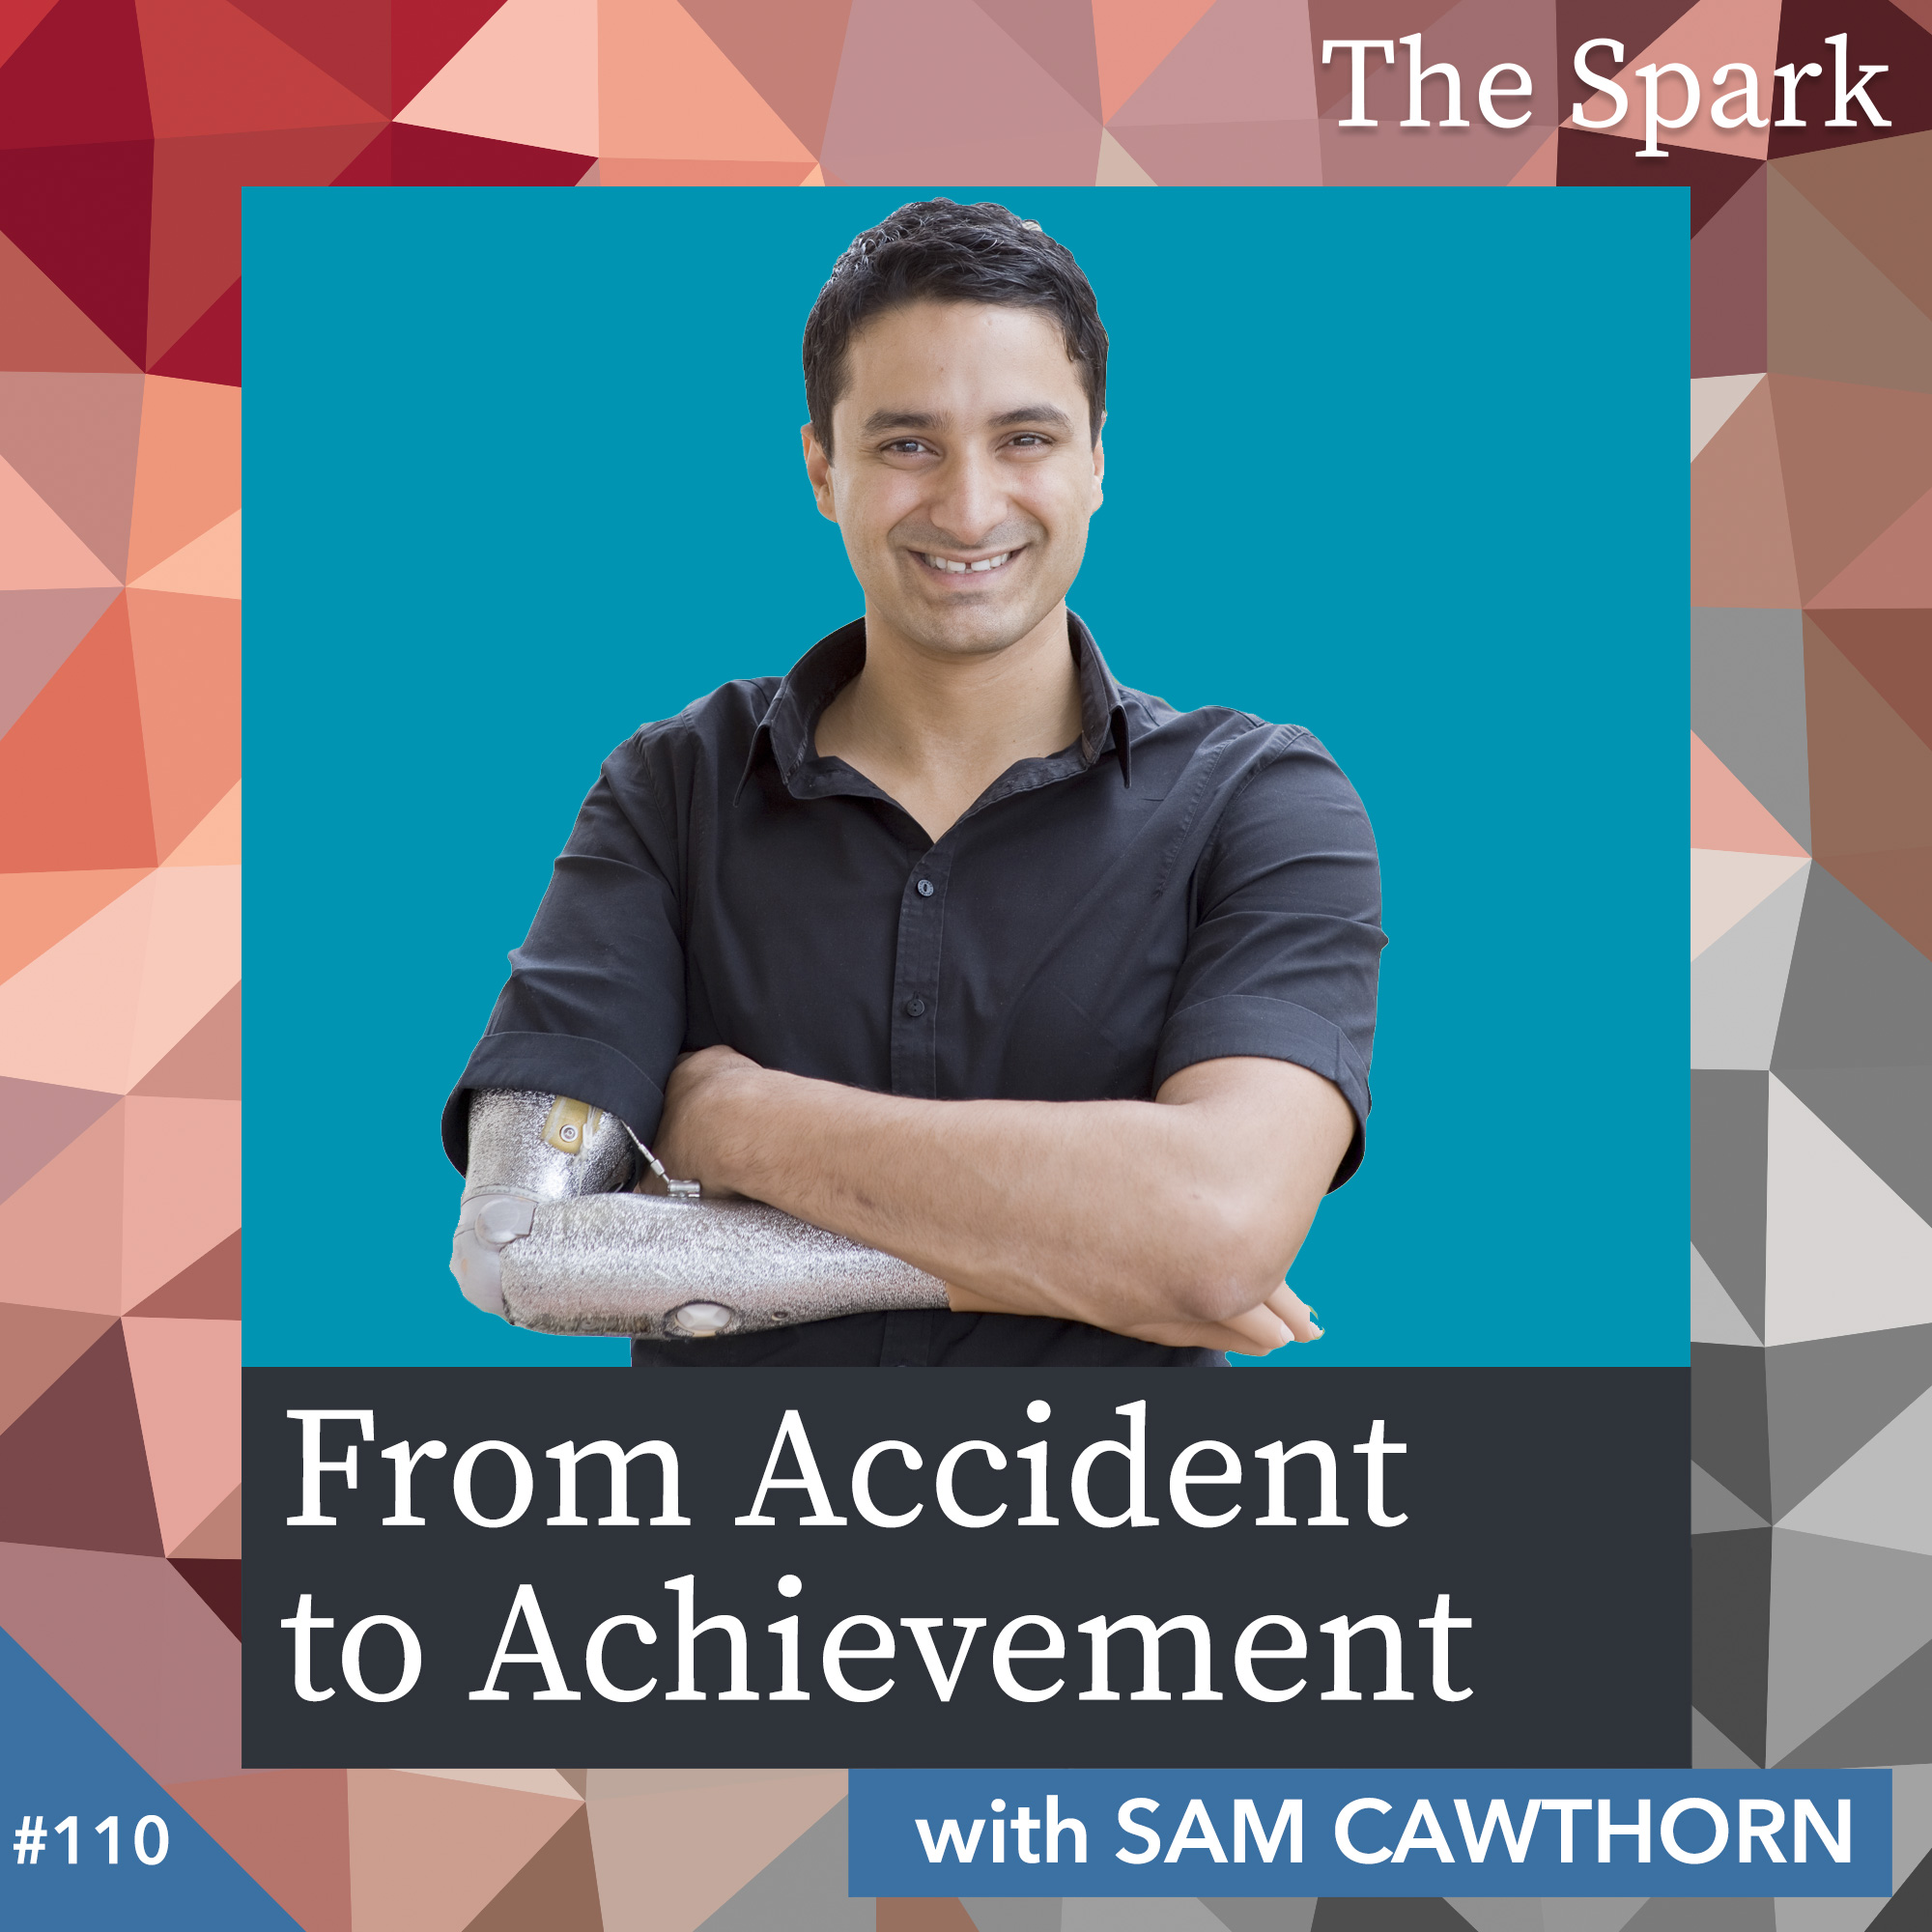 From Accident to Achievement with Sam Cawthorn